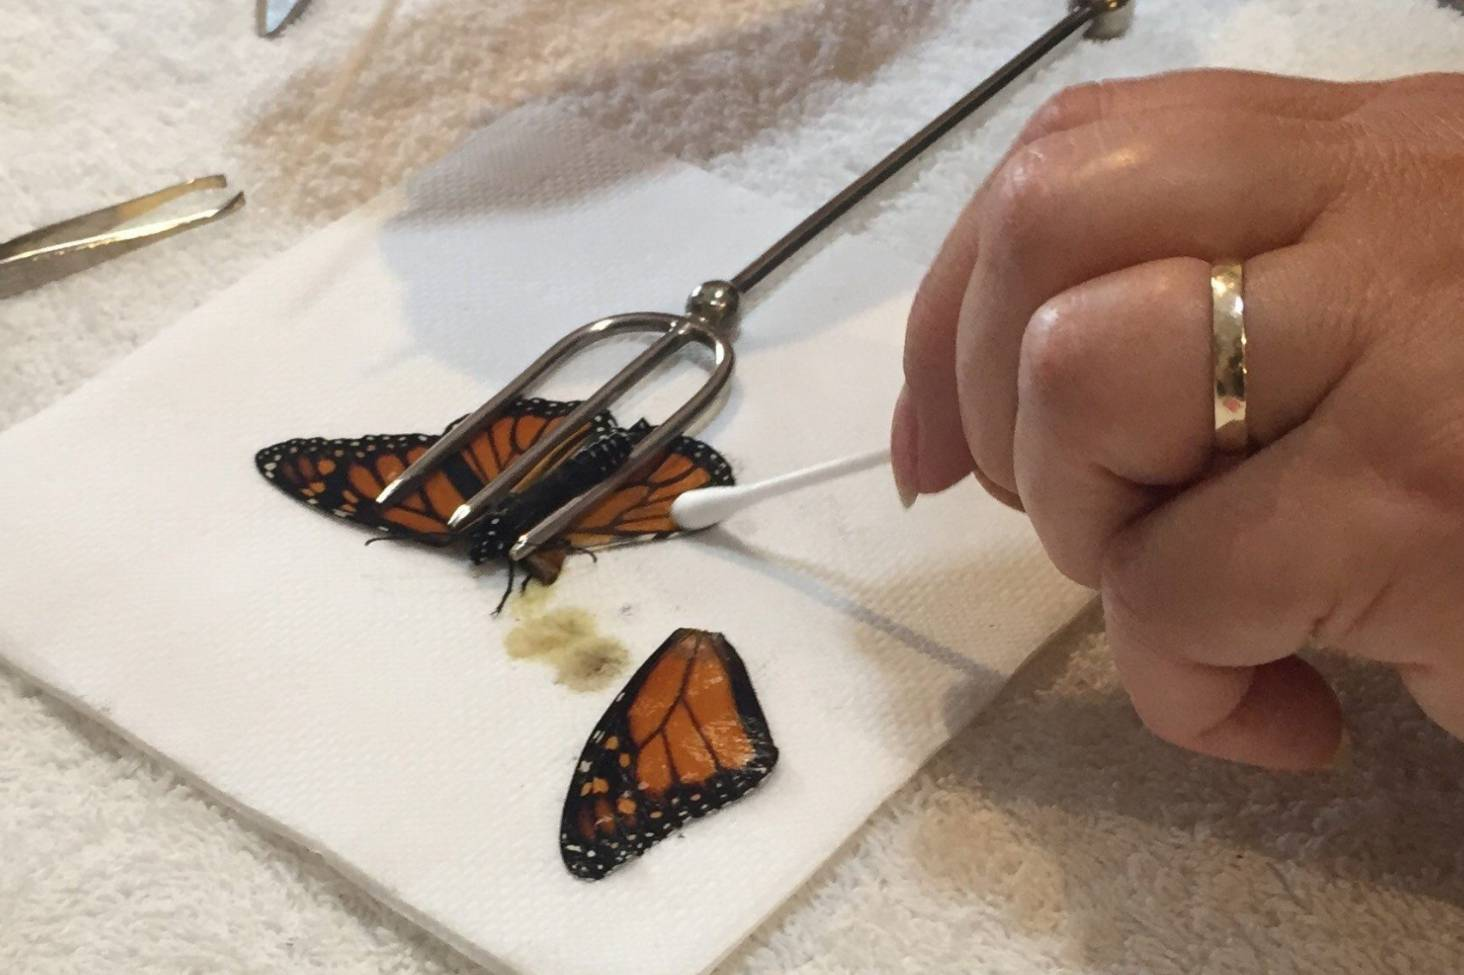 Franken Fly Wing Transplant Gives Injured Erfly A Flying Chance Stuff Co Nz